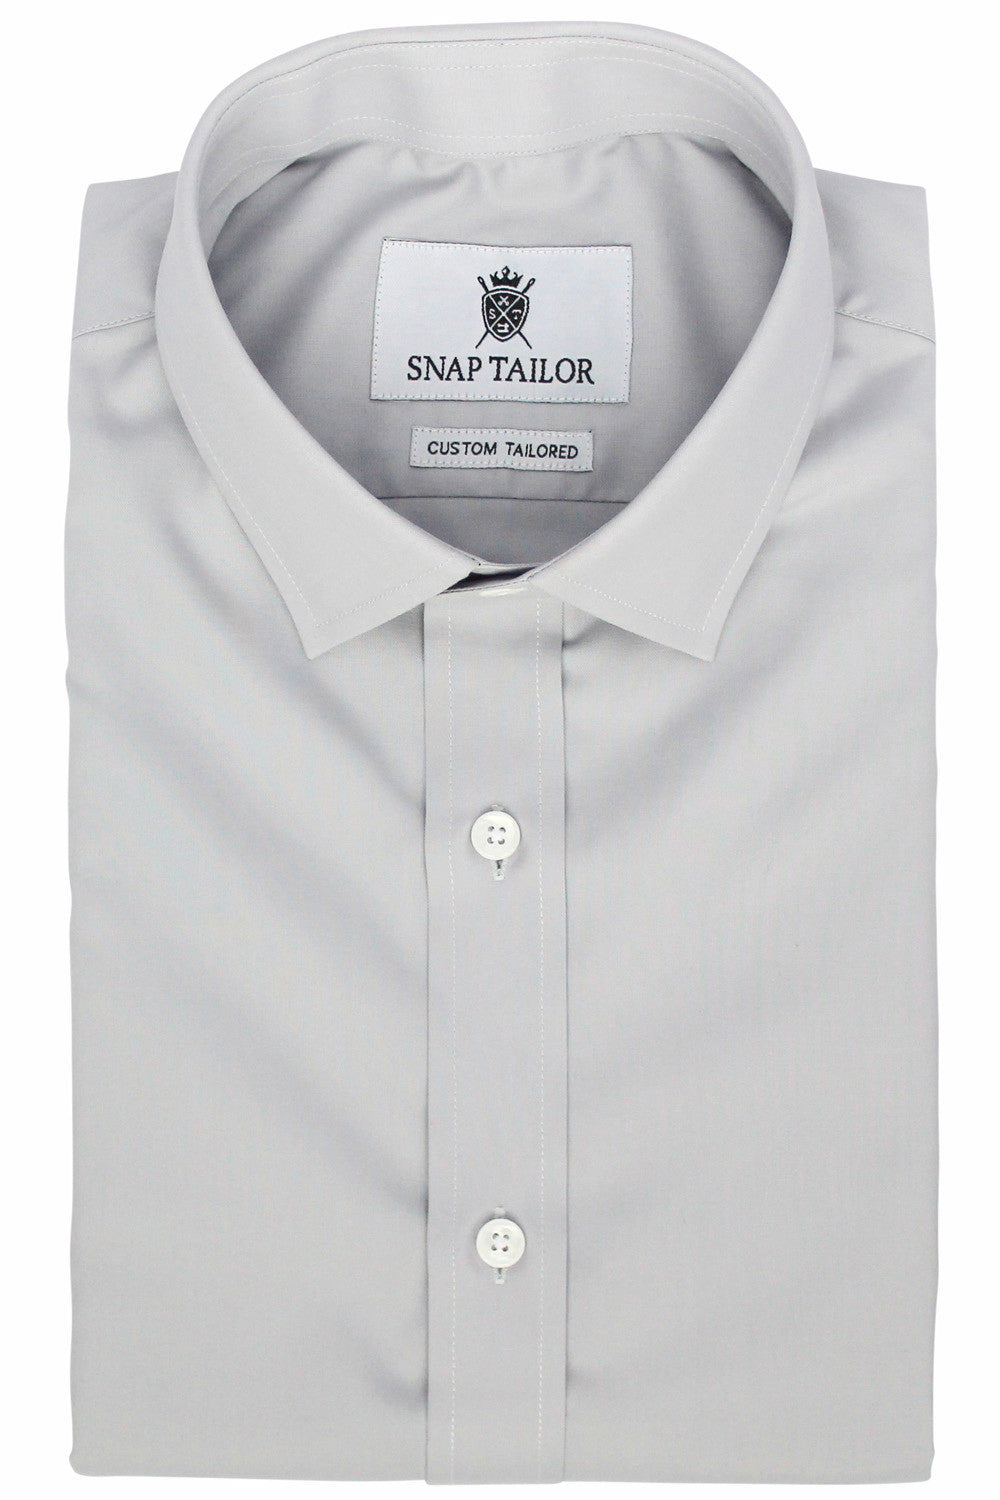 Photo of the Diamond Solid Dress Shirt in Light Gray